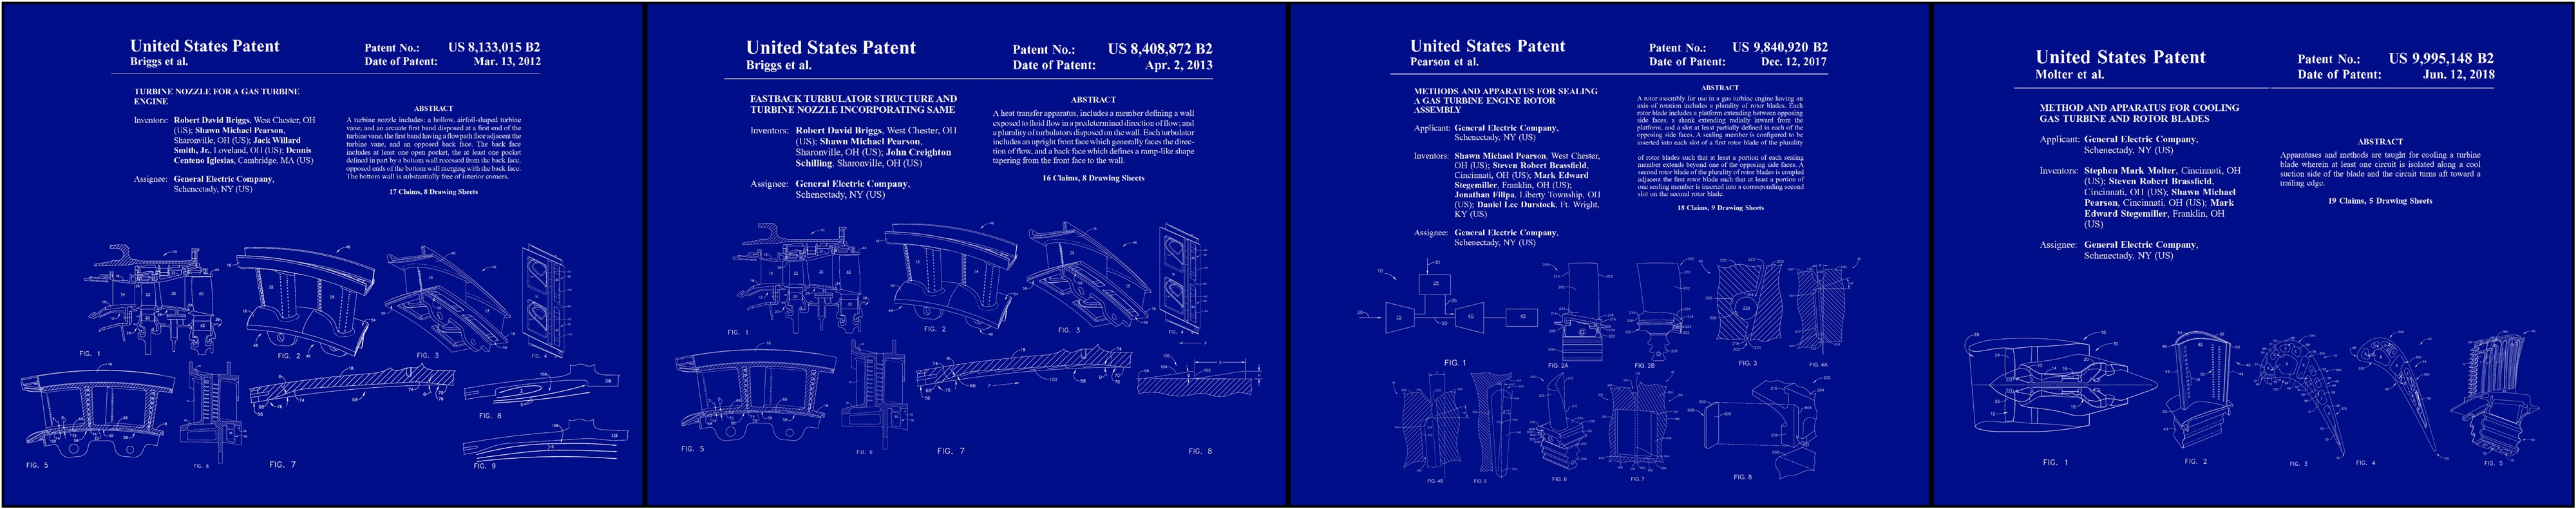 Projects Feedback Re Purposed U S Patent Illustrations